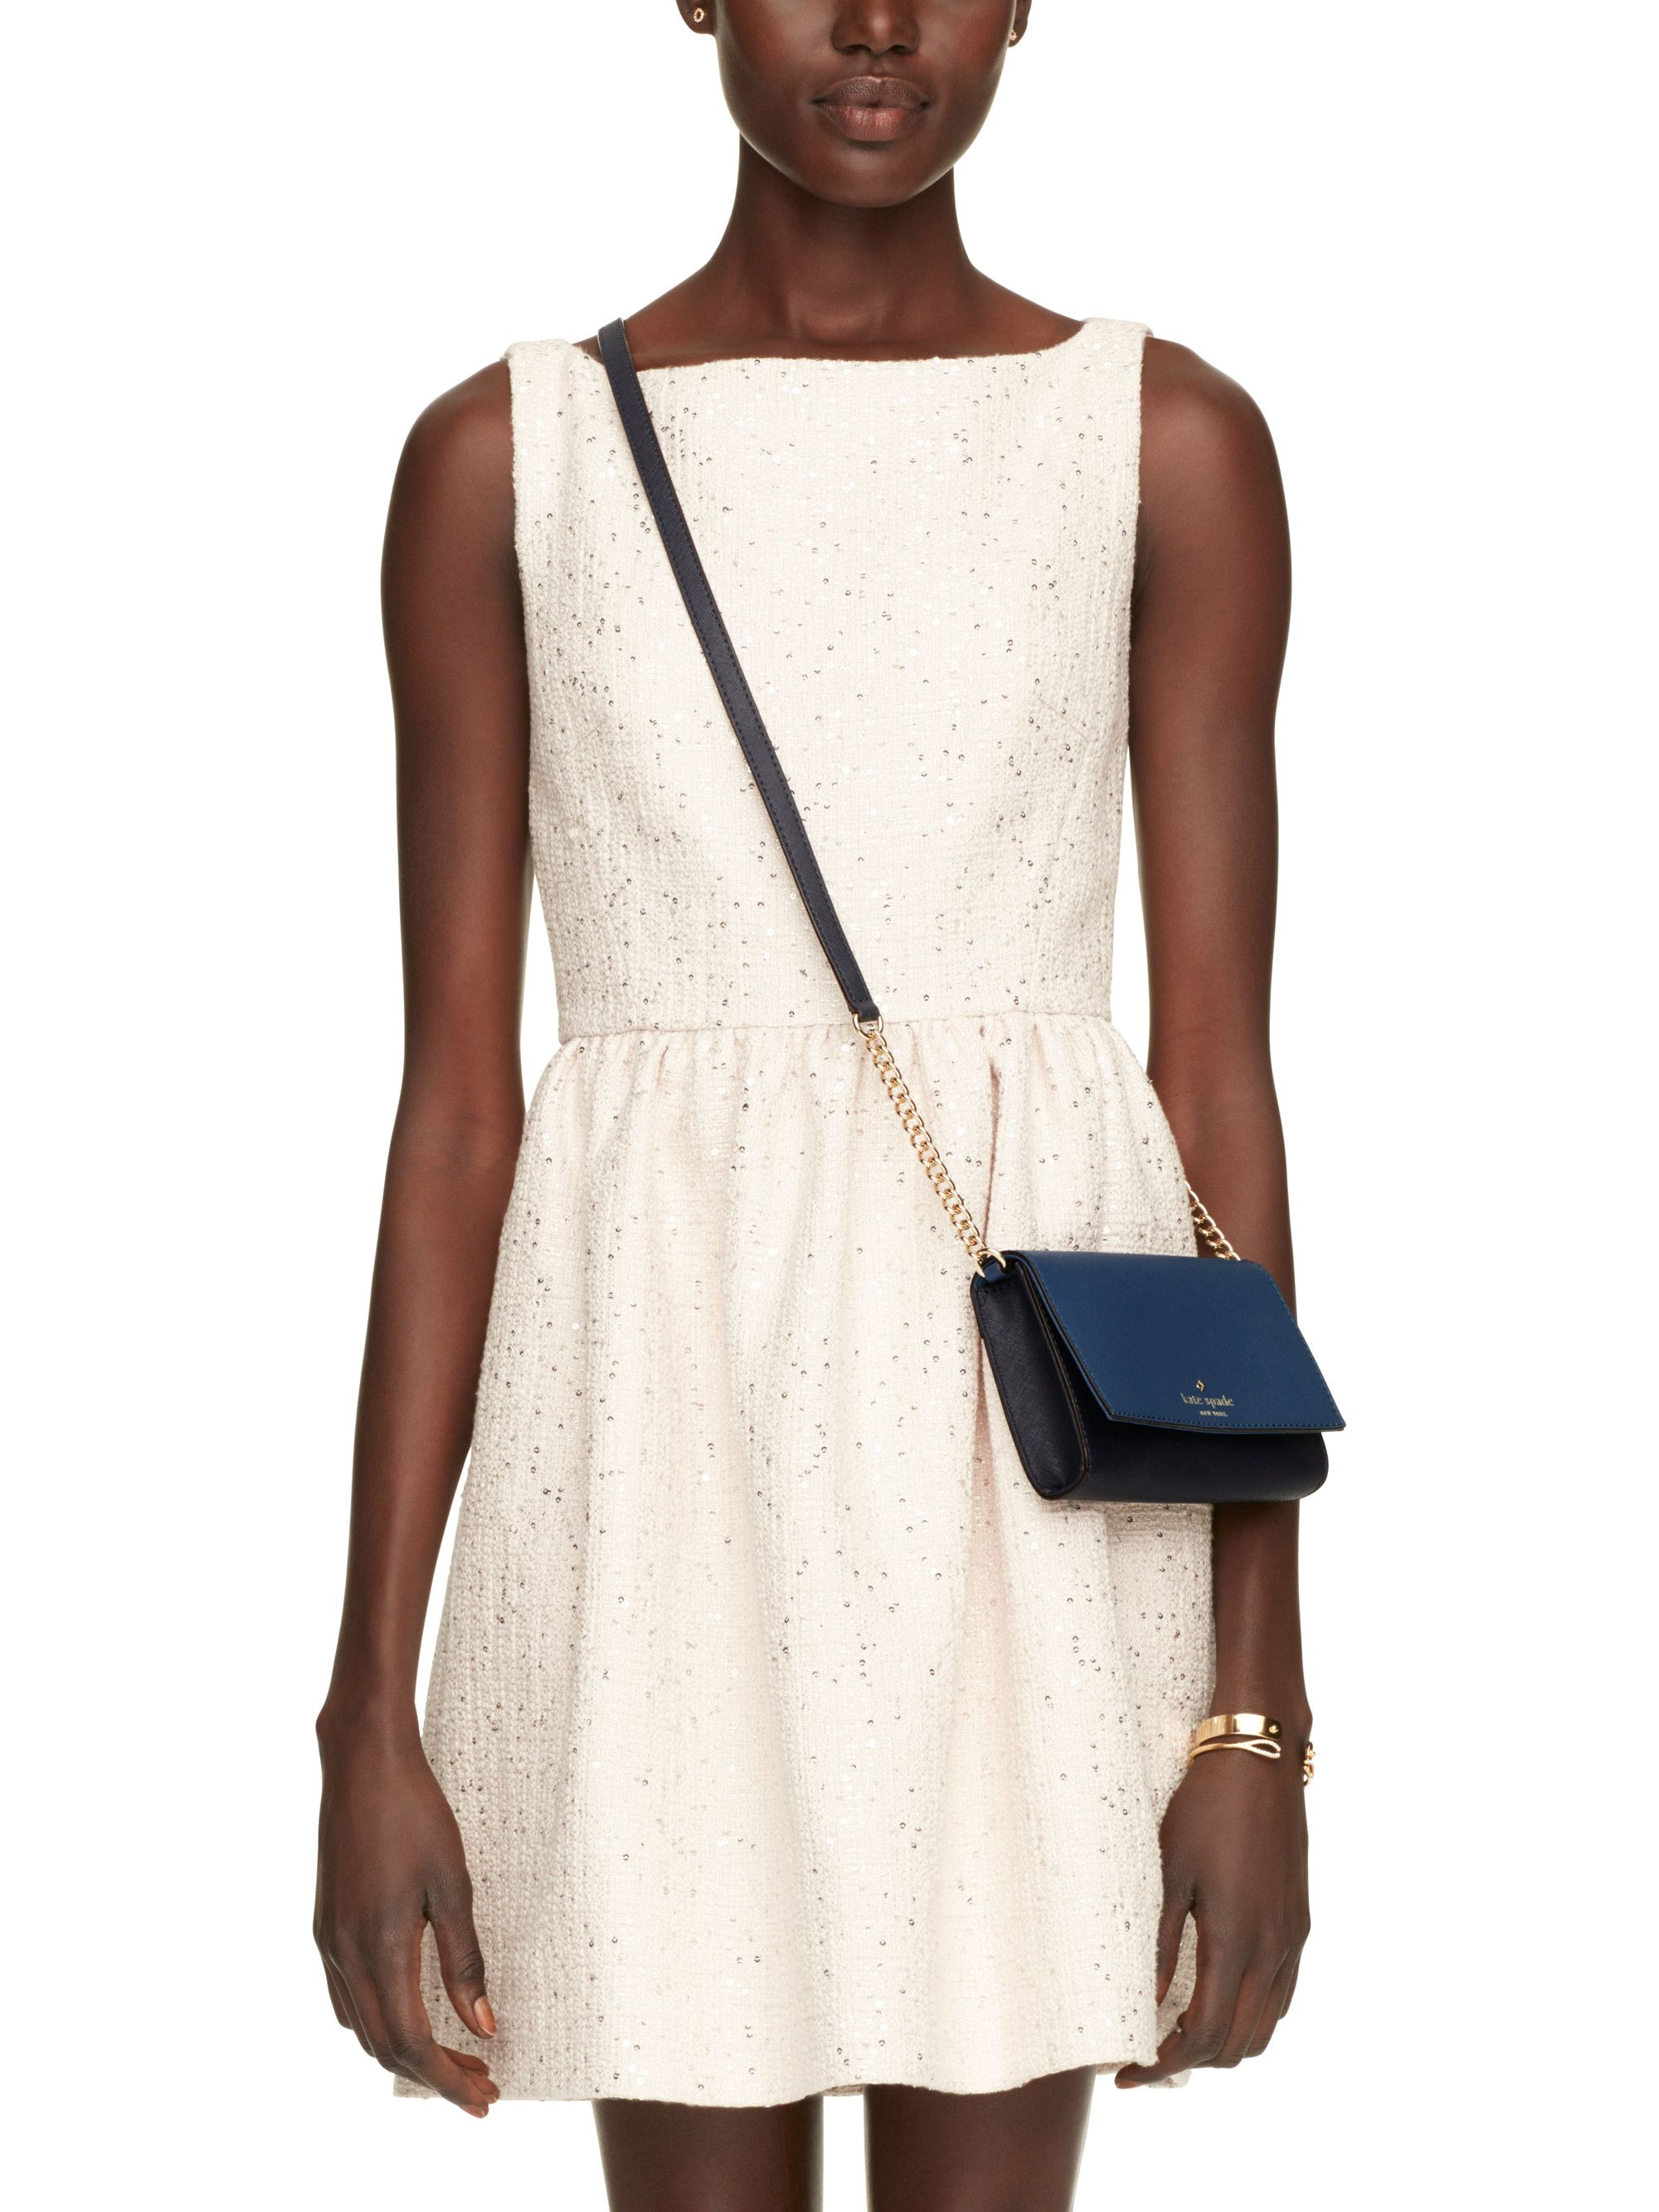 kate-spade-new-york-holiday-denimoff-shore-cedar-street-cami-blue-product-1-653072610-normal.jpeg (2000×2666)